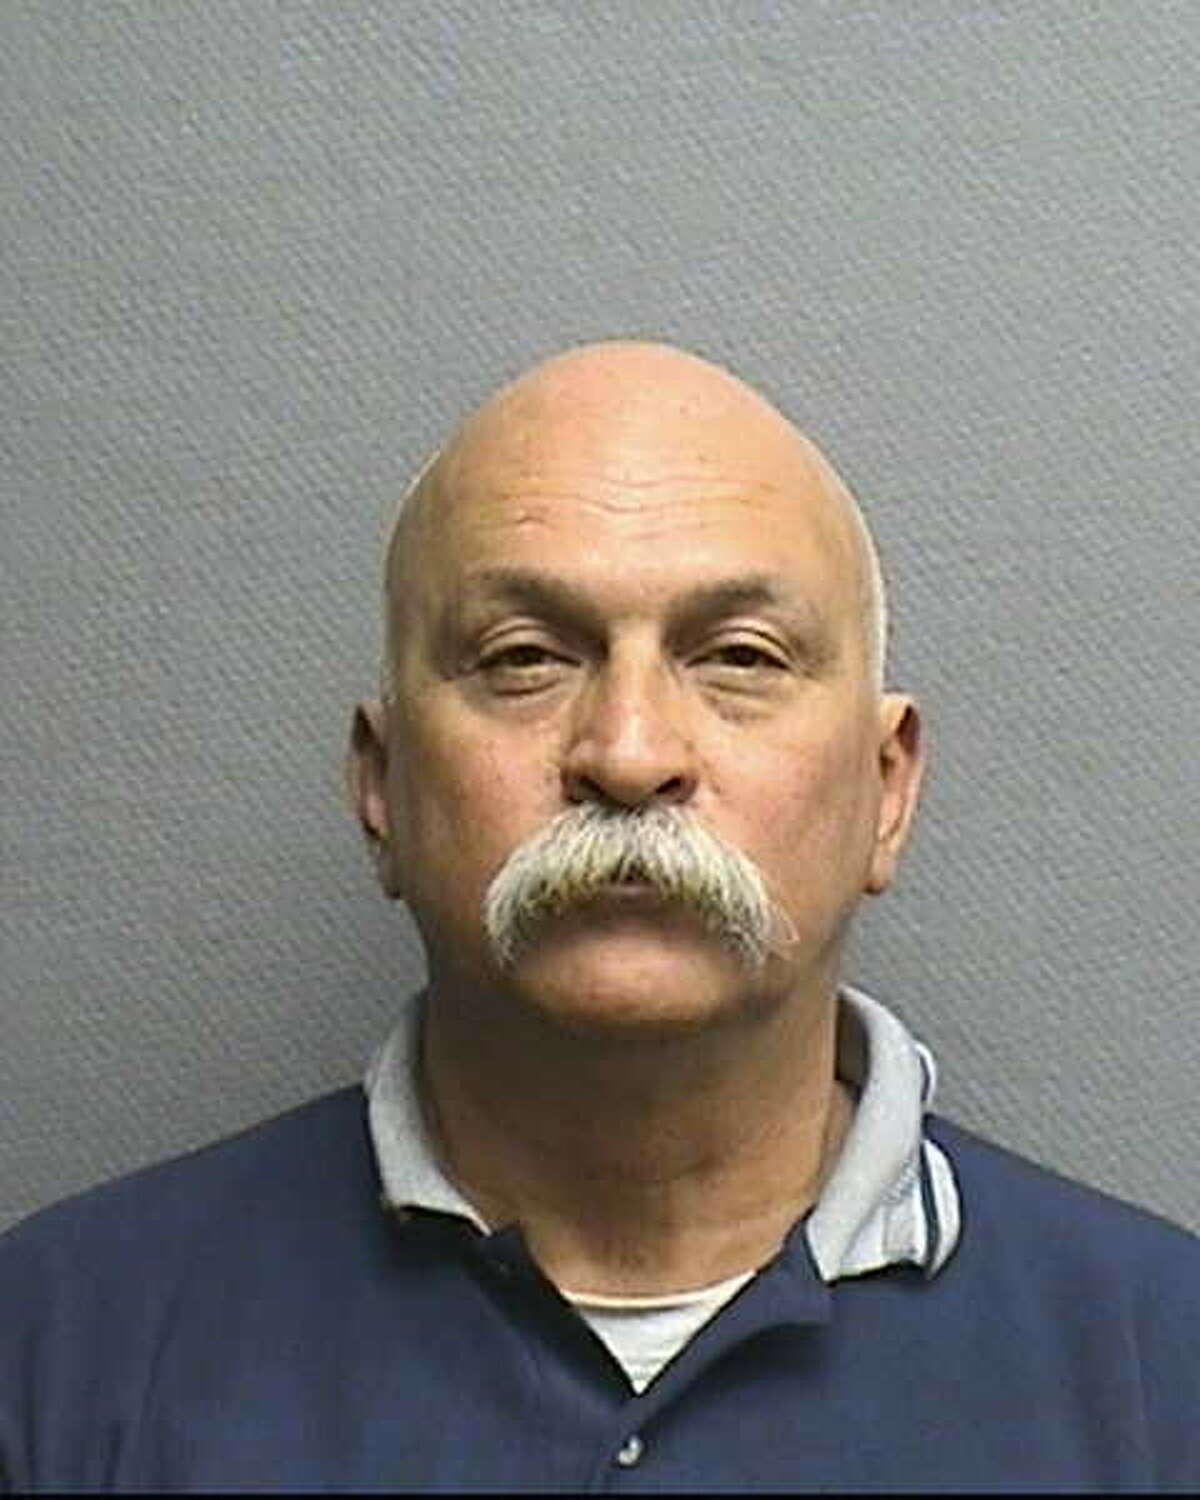 This is a photo of Lawrence Chapa, who was working as a government informant when he was driving a truck that was fatally attacked in Houston. Chapa, 53, was from Houston. This shot is from 2/4/2010 when he was arrested by HPD for possession of a controlled substance. Photo by HPD